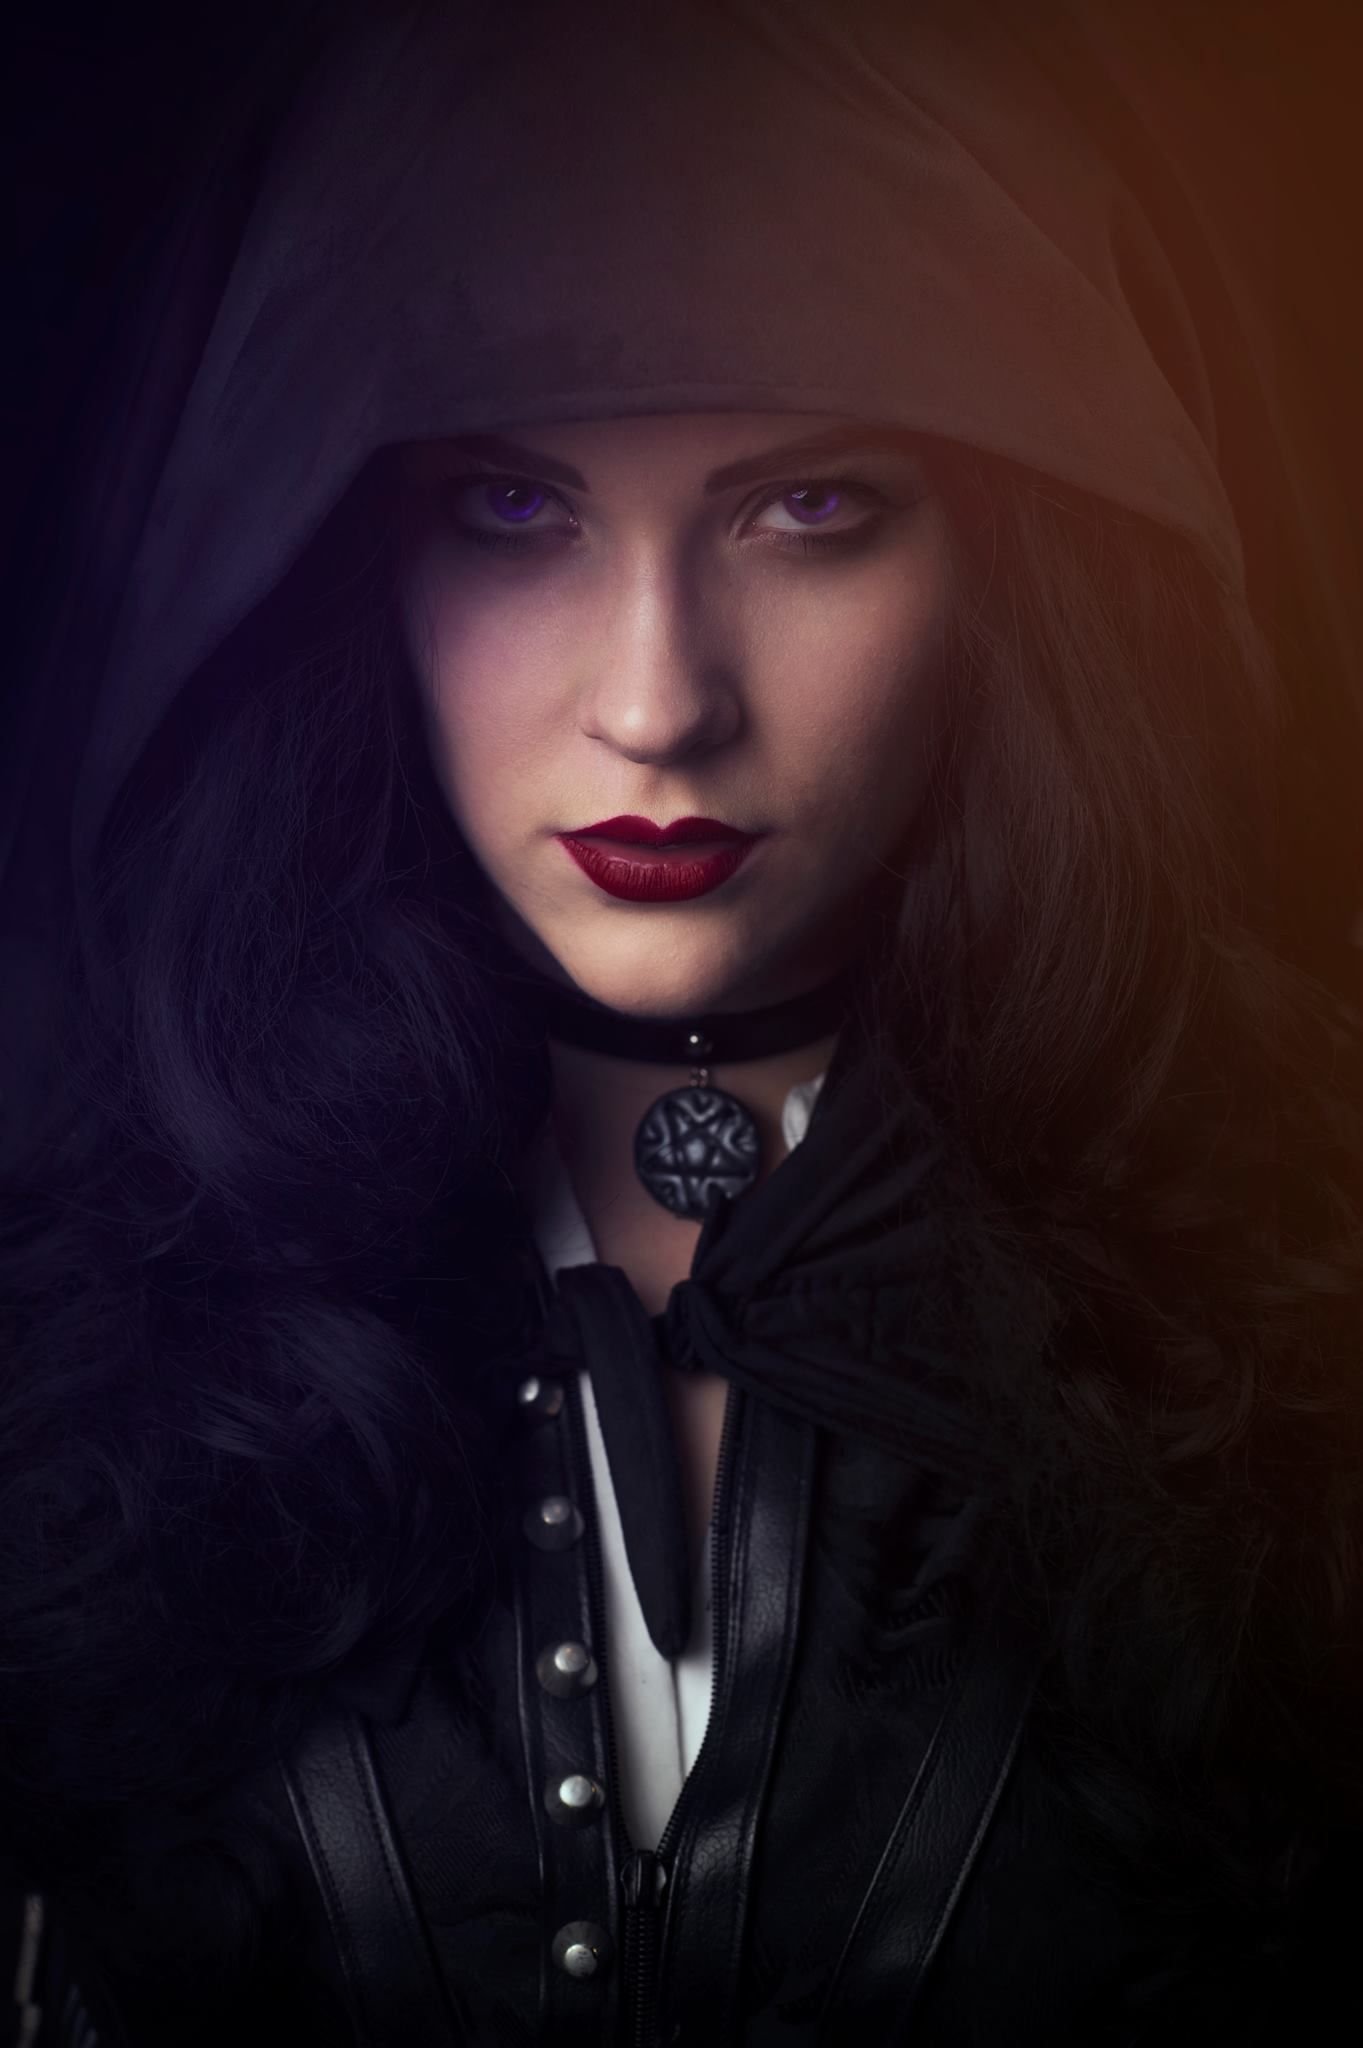 Pin On Video Game Cosplay Yennefer Of Vengerberg The Witcher